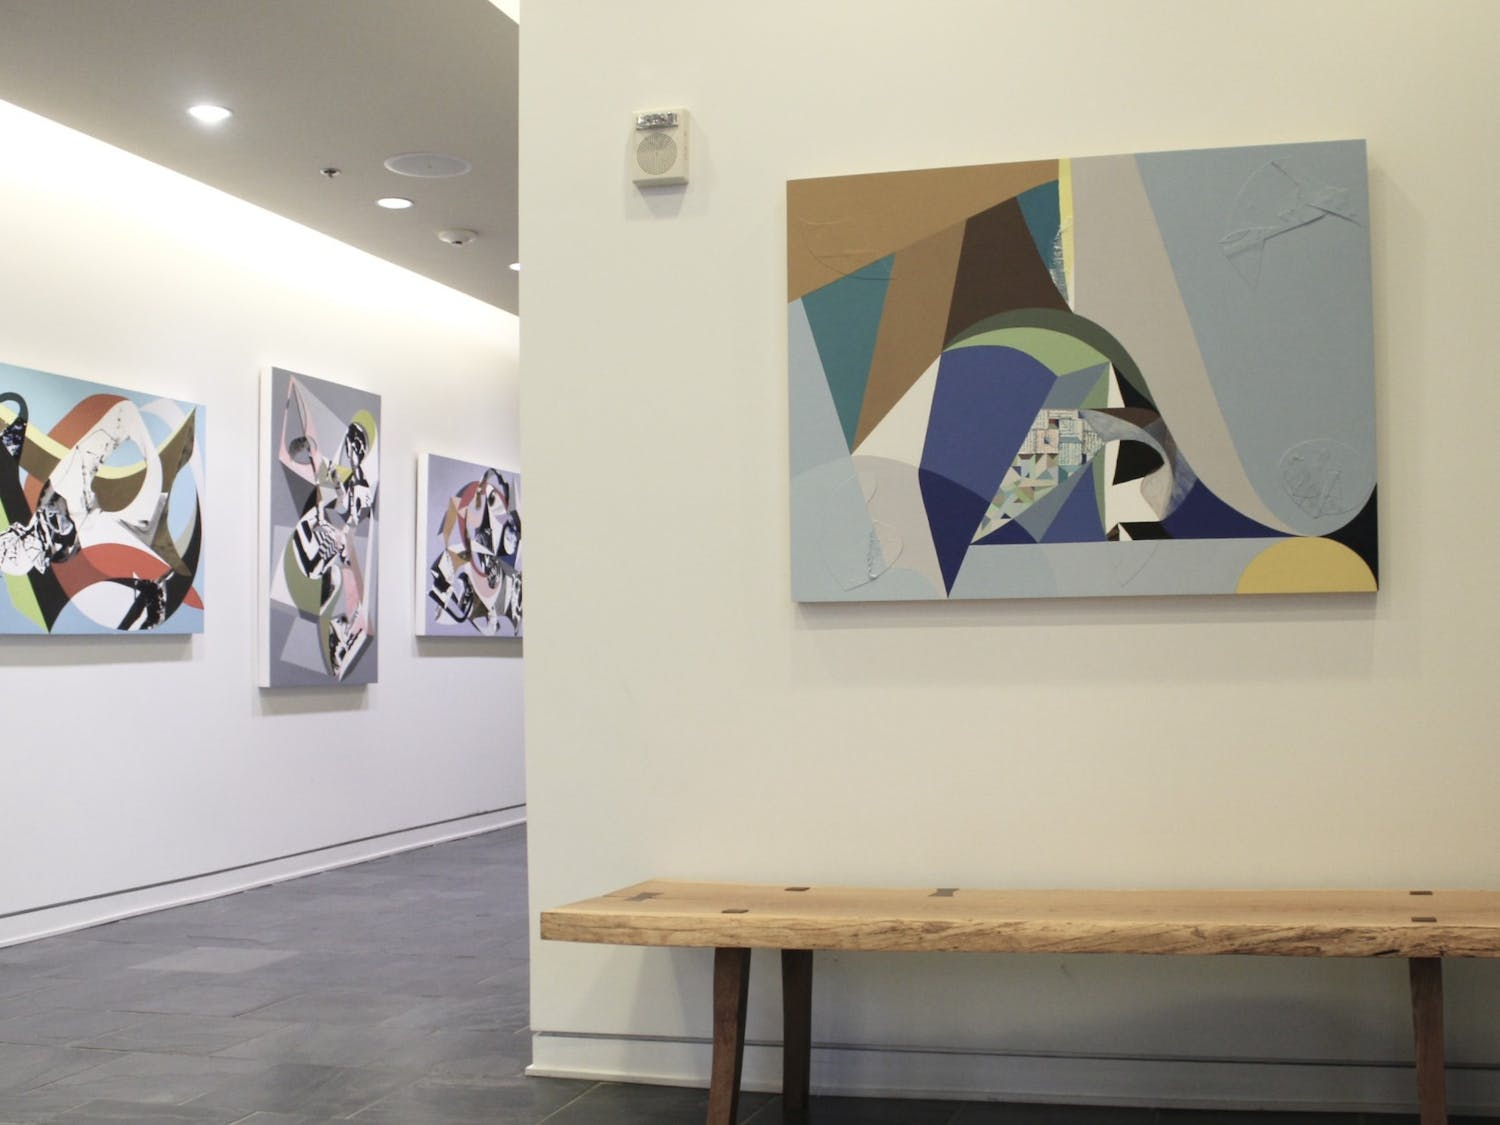 """The """"Transcending Geometry"""" exhibitionhoused by Oneoneone, a contemporary art gallery inside of Sitzer-Spuria Studios, features Chapel Hill artists Chieko Murasugi, Neil Patterson and Louis Watts."""